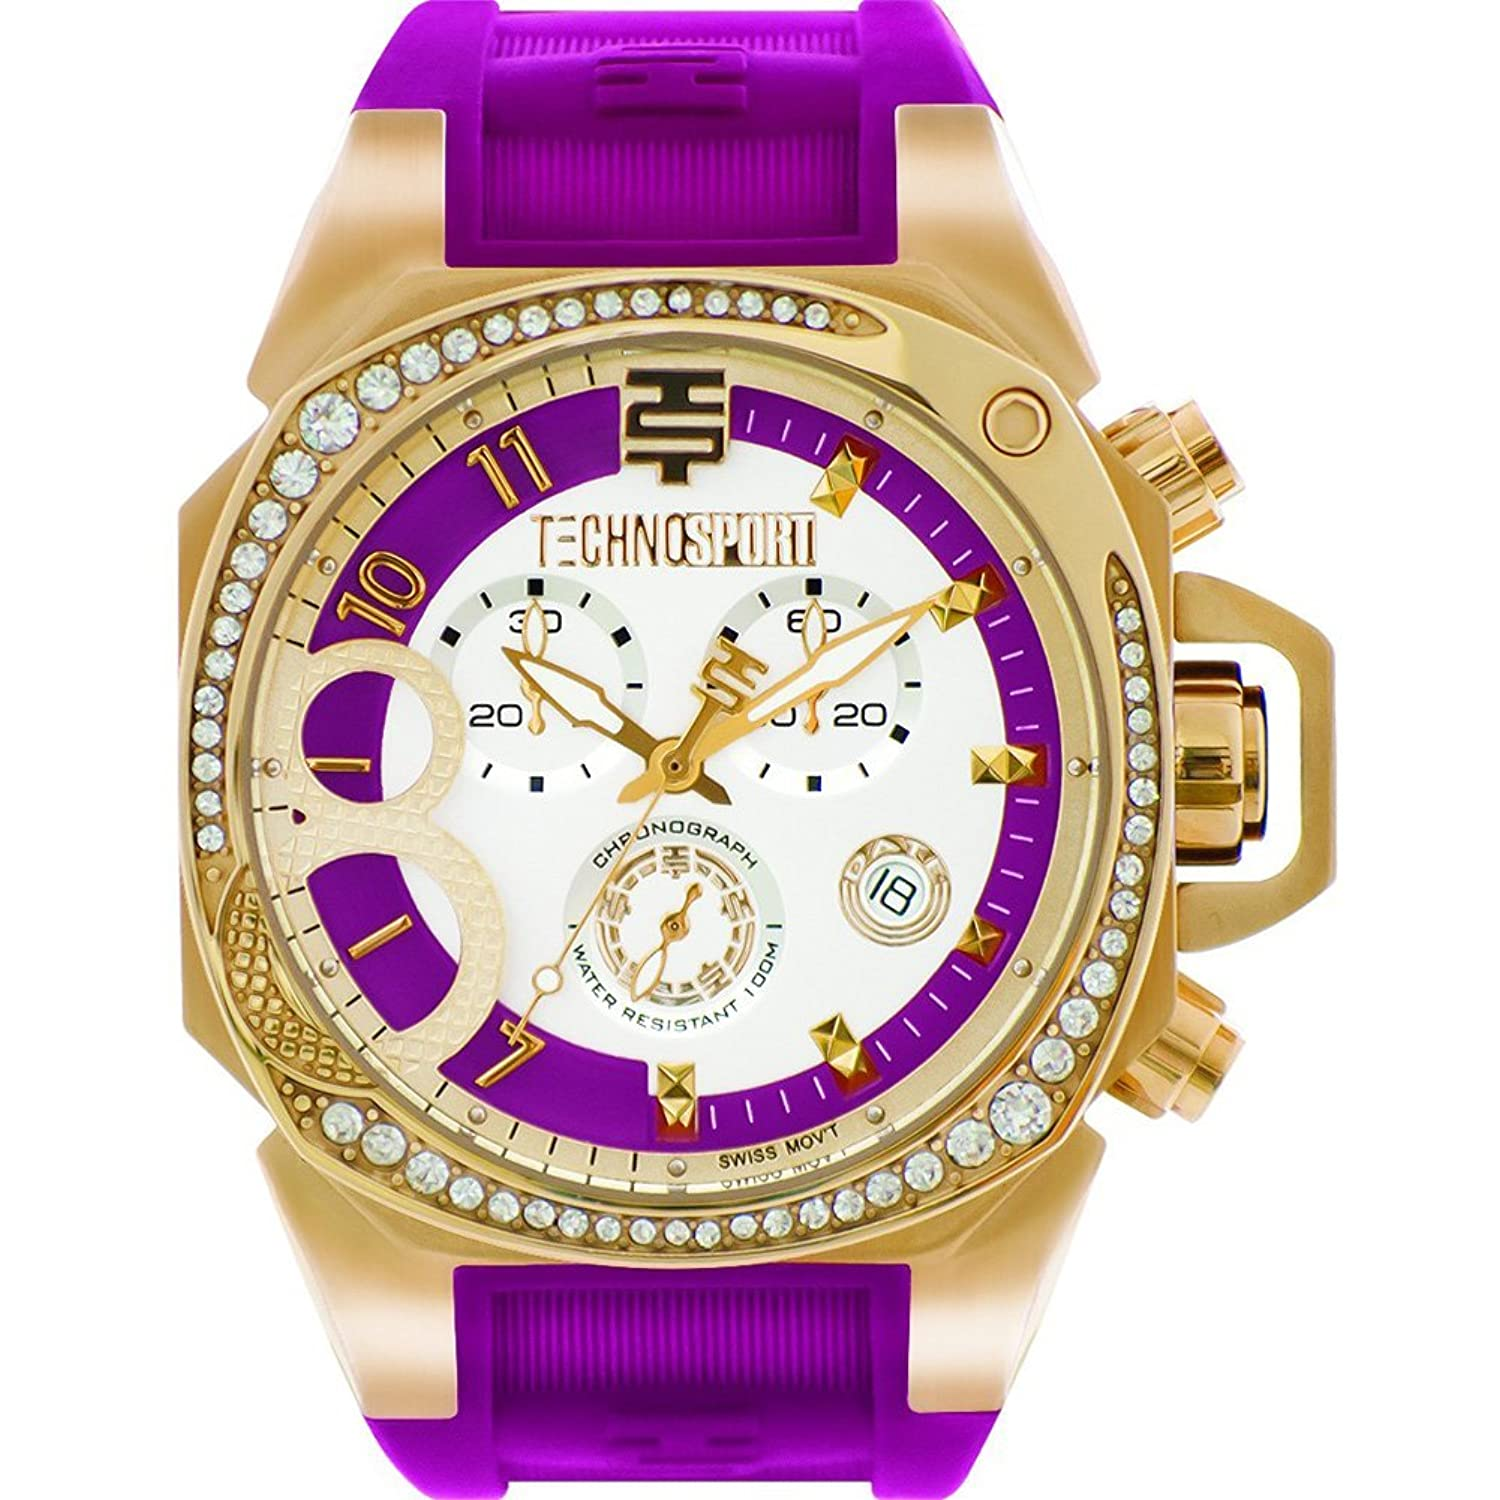 TechnoSport Damen Chrono Uhr - RADIANCE gold - cranberry